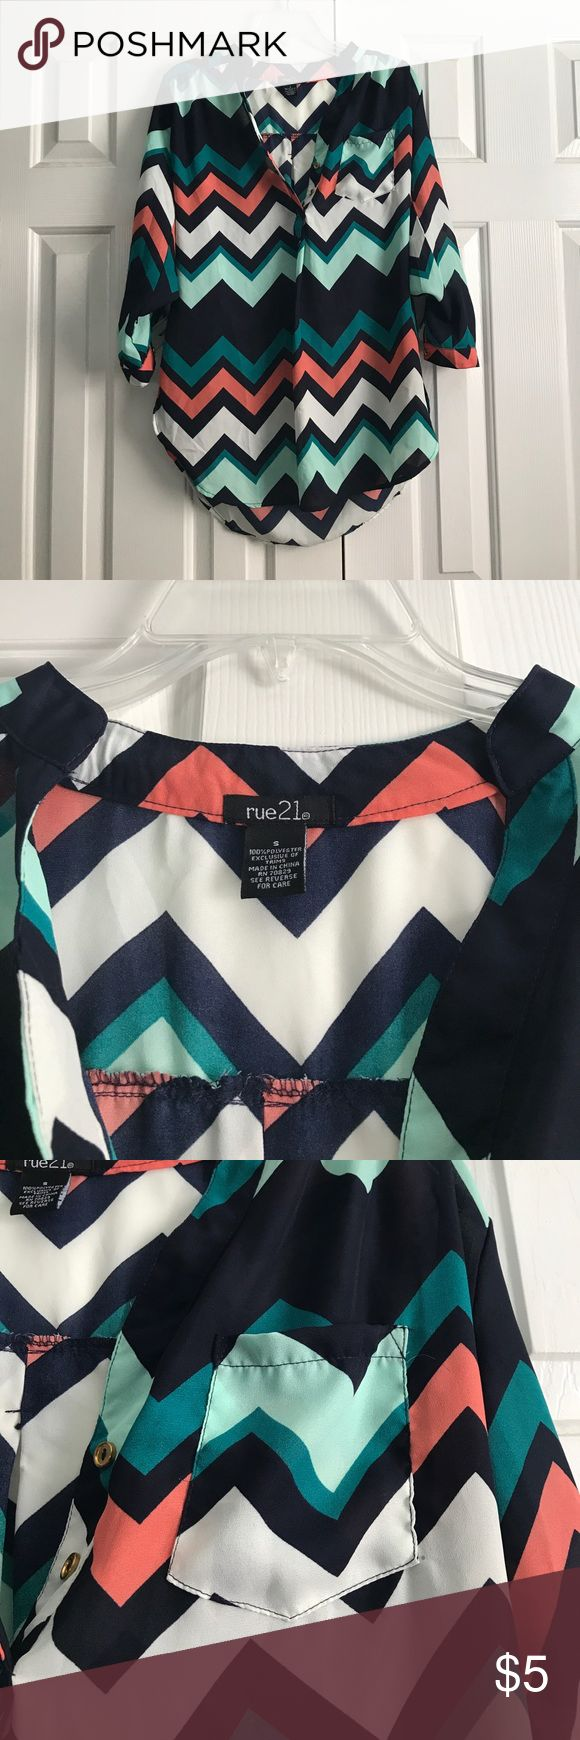 """[rue21] chevron blouse ONLY WORN ONCE  🍂FALL TREND🍂 Rue21 """"tunic"""" type blouse (the back covers your butt). The only flaw is there are loose threads in a few places. Other than that, the shirt is in perfect condition. 100% polyester. If you have any questions please comment below! Rue21 Tops Blouses"""